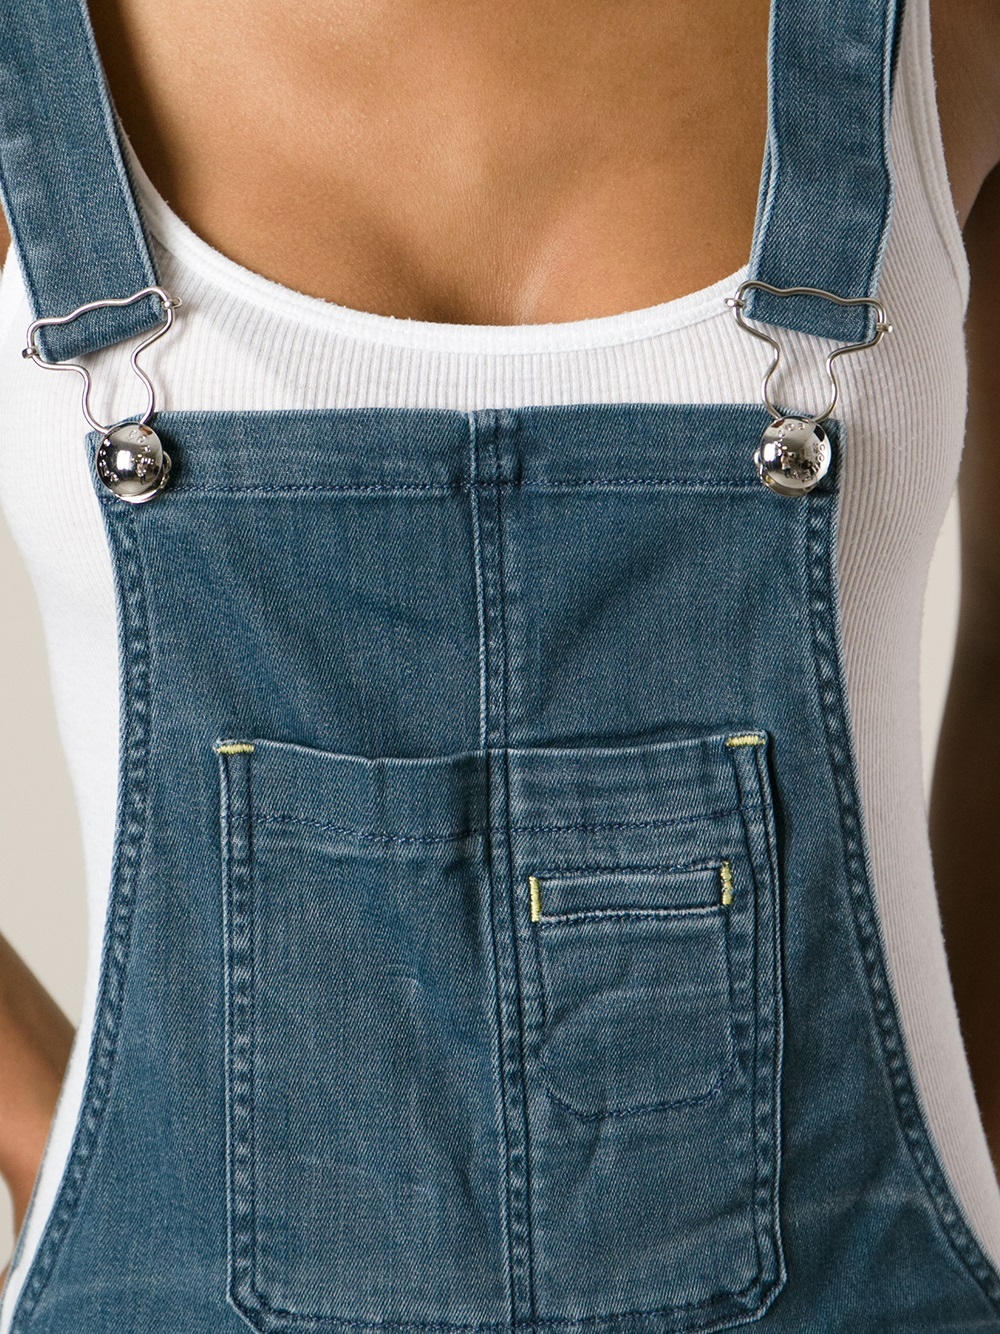 Cheapest Price Cheap Online Sale With Mastercard DUNGAREES - Dungarees Jacob Cohen Amazon For Sale Cheap With Paypal 4yy4XtNBe